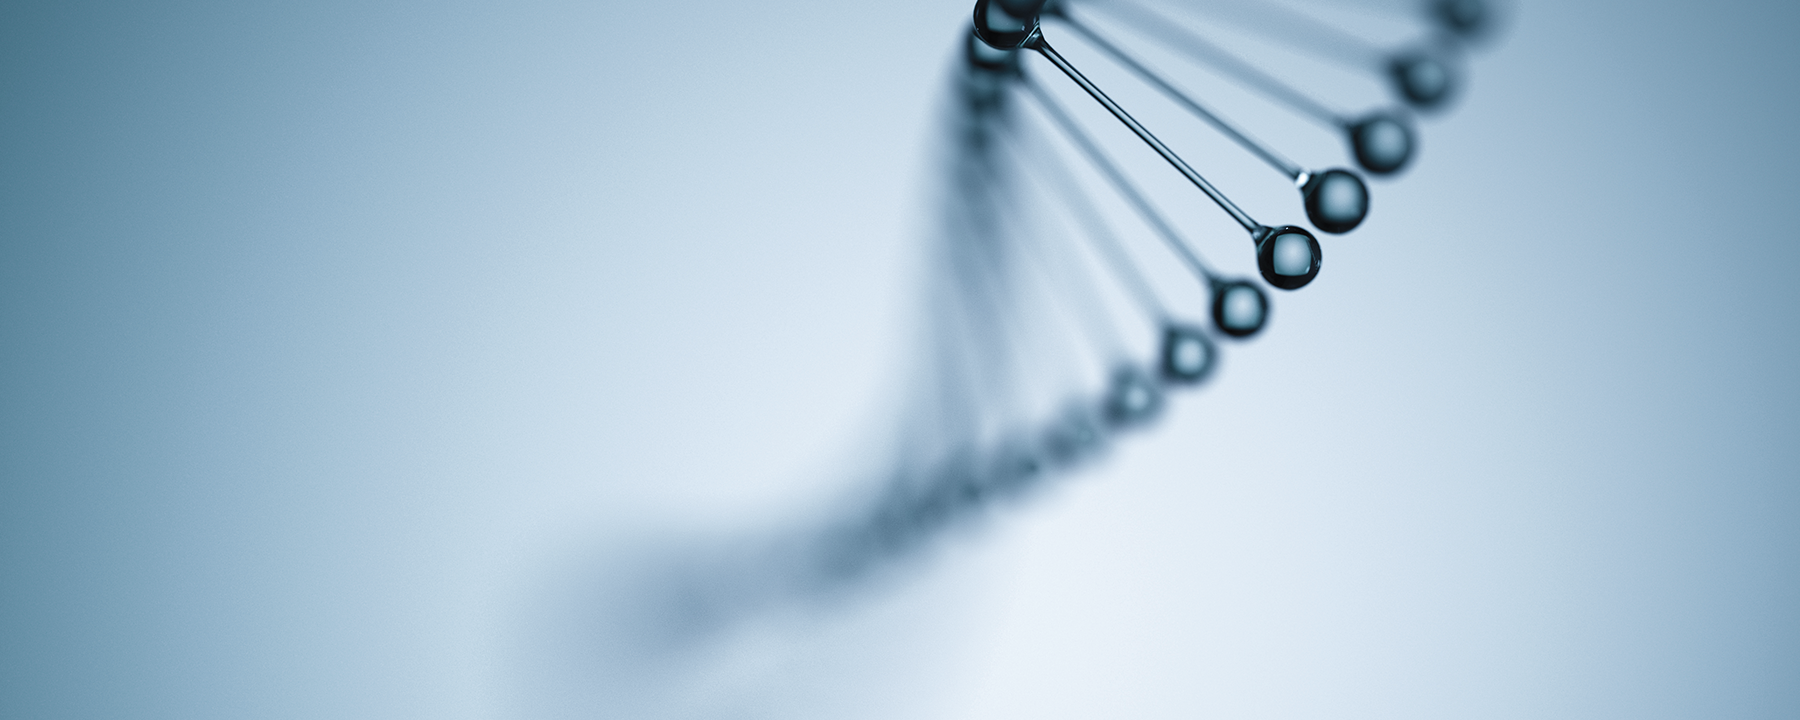 Left-Handed DNA Has a Biological Role Within a Dynamic Genetic Code